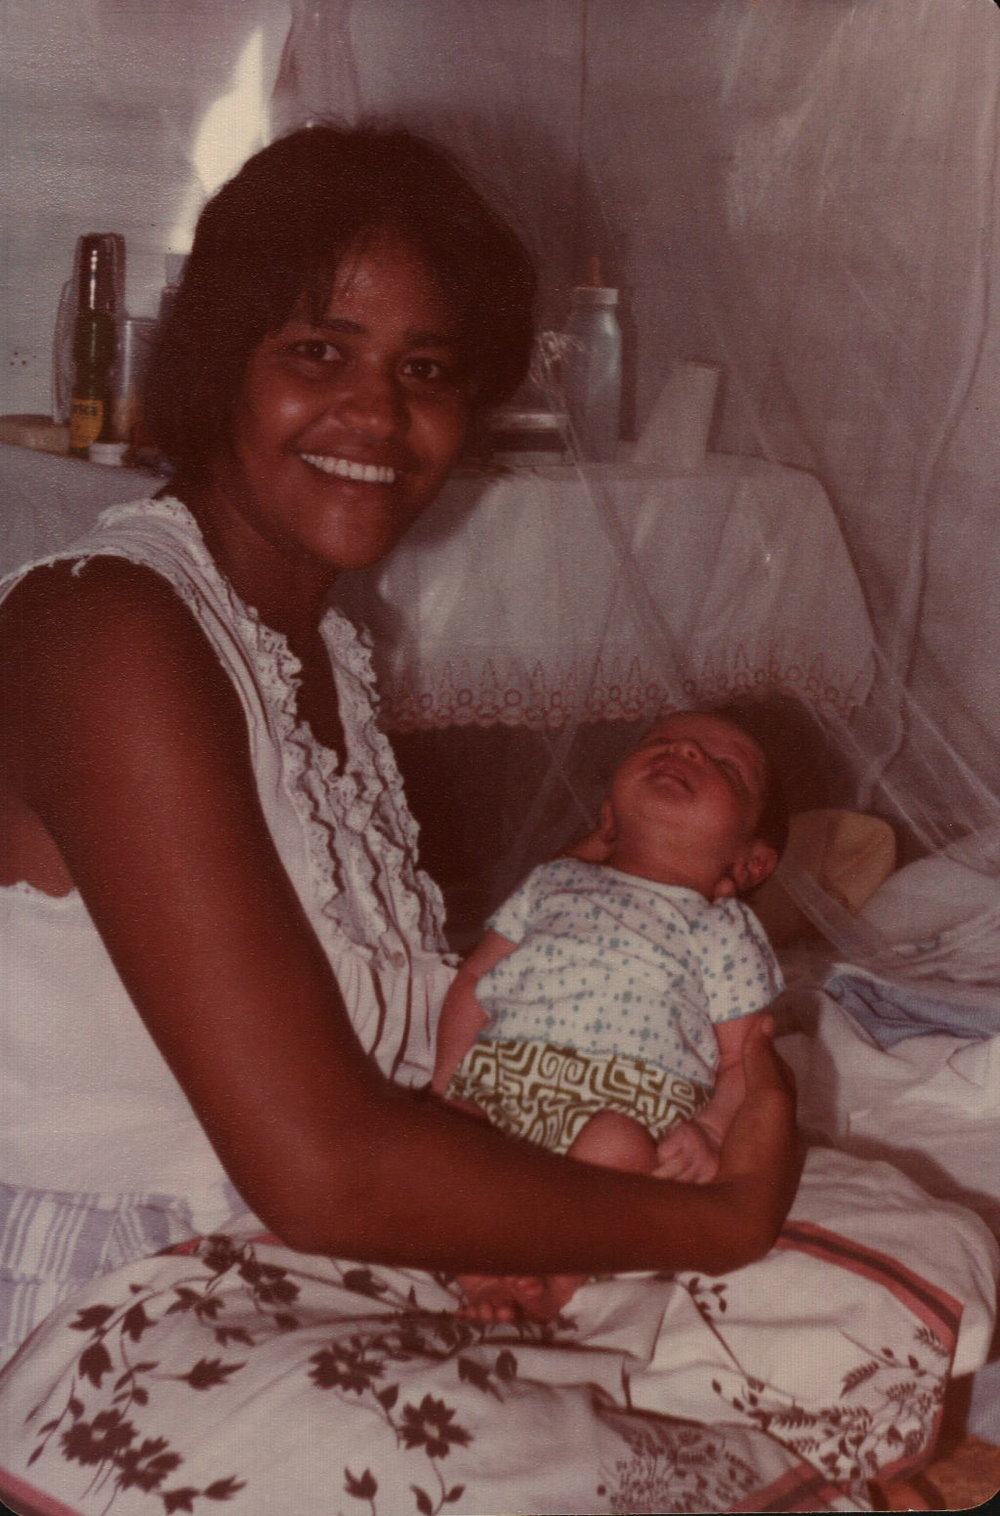 February 2nd, 1982, Nicholas was born in the Hospital in Vava'u -